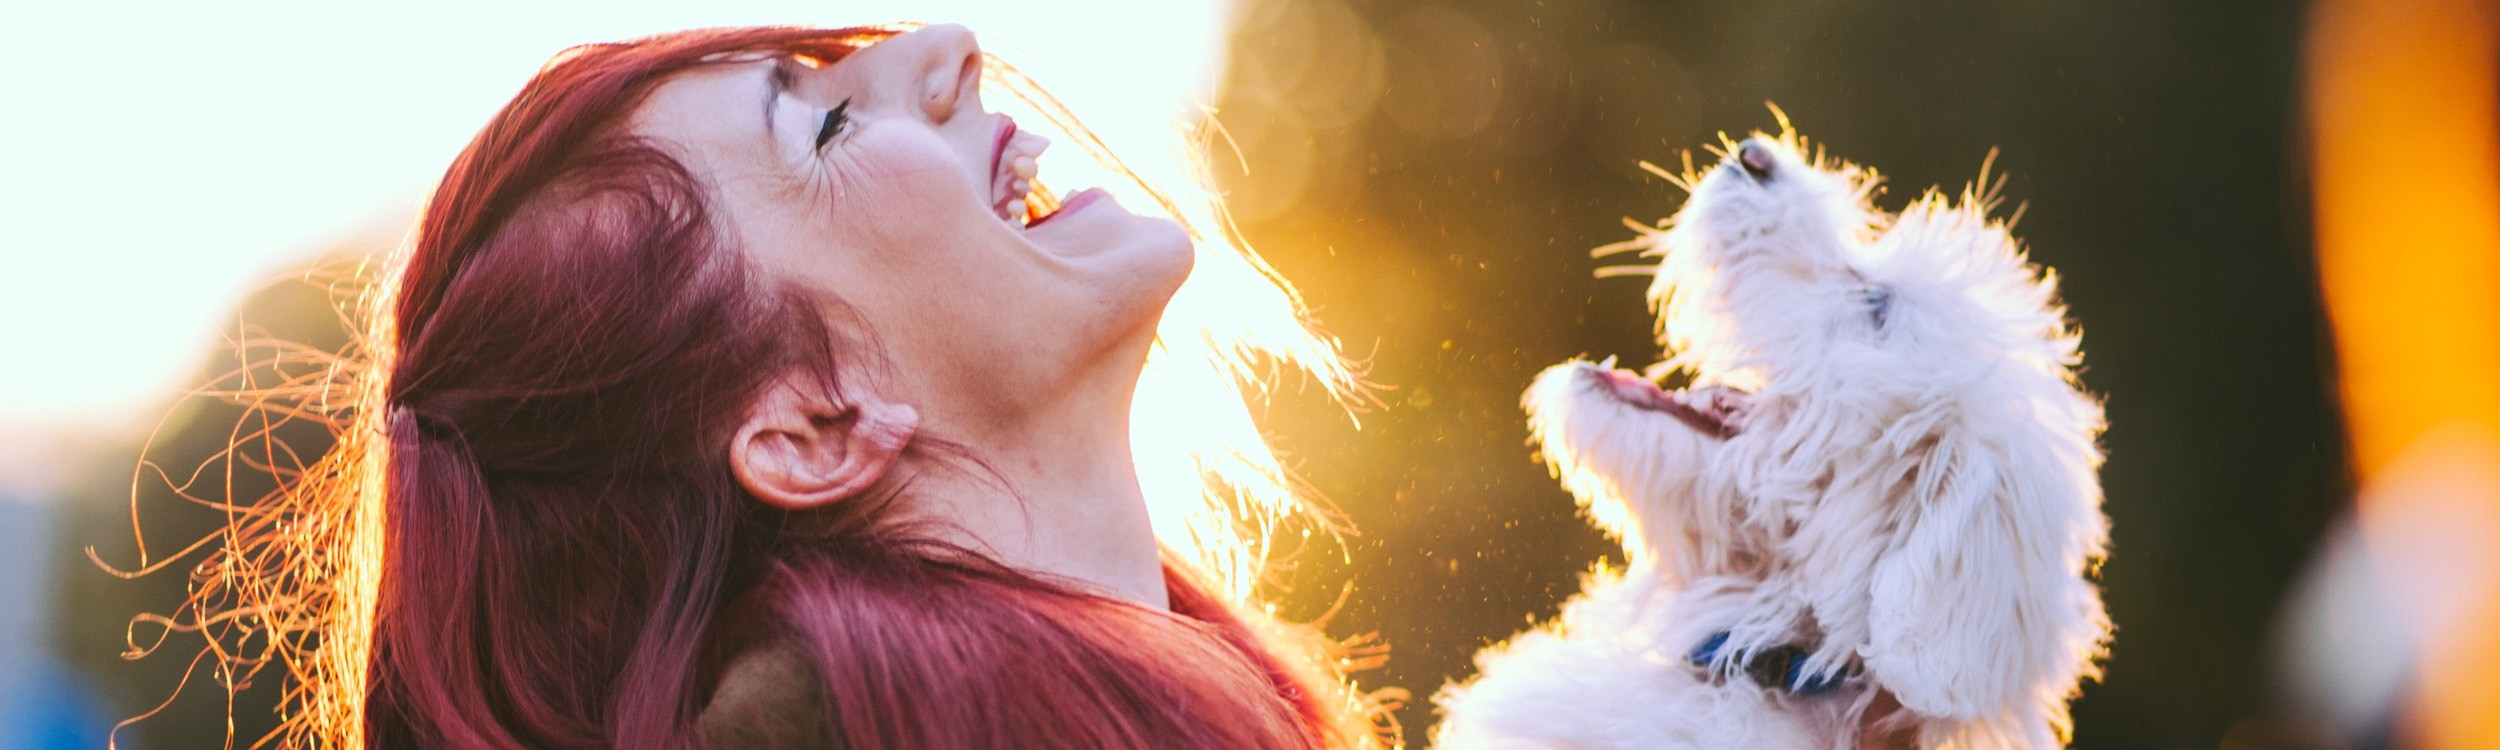 girl with red hair smiling while holding white small dog